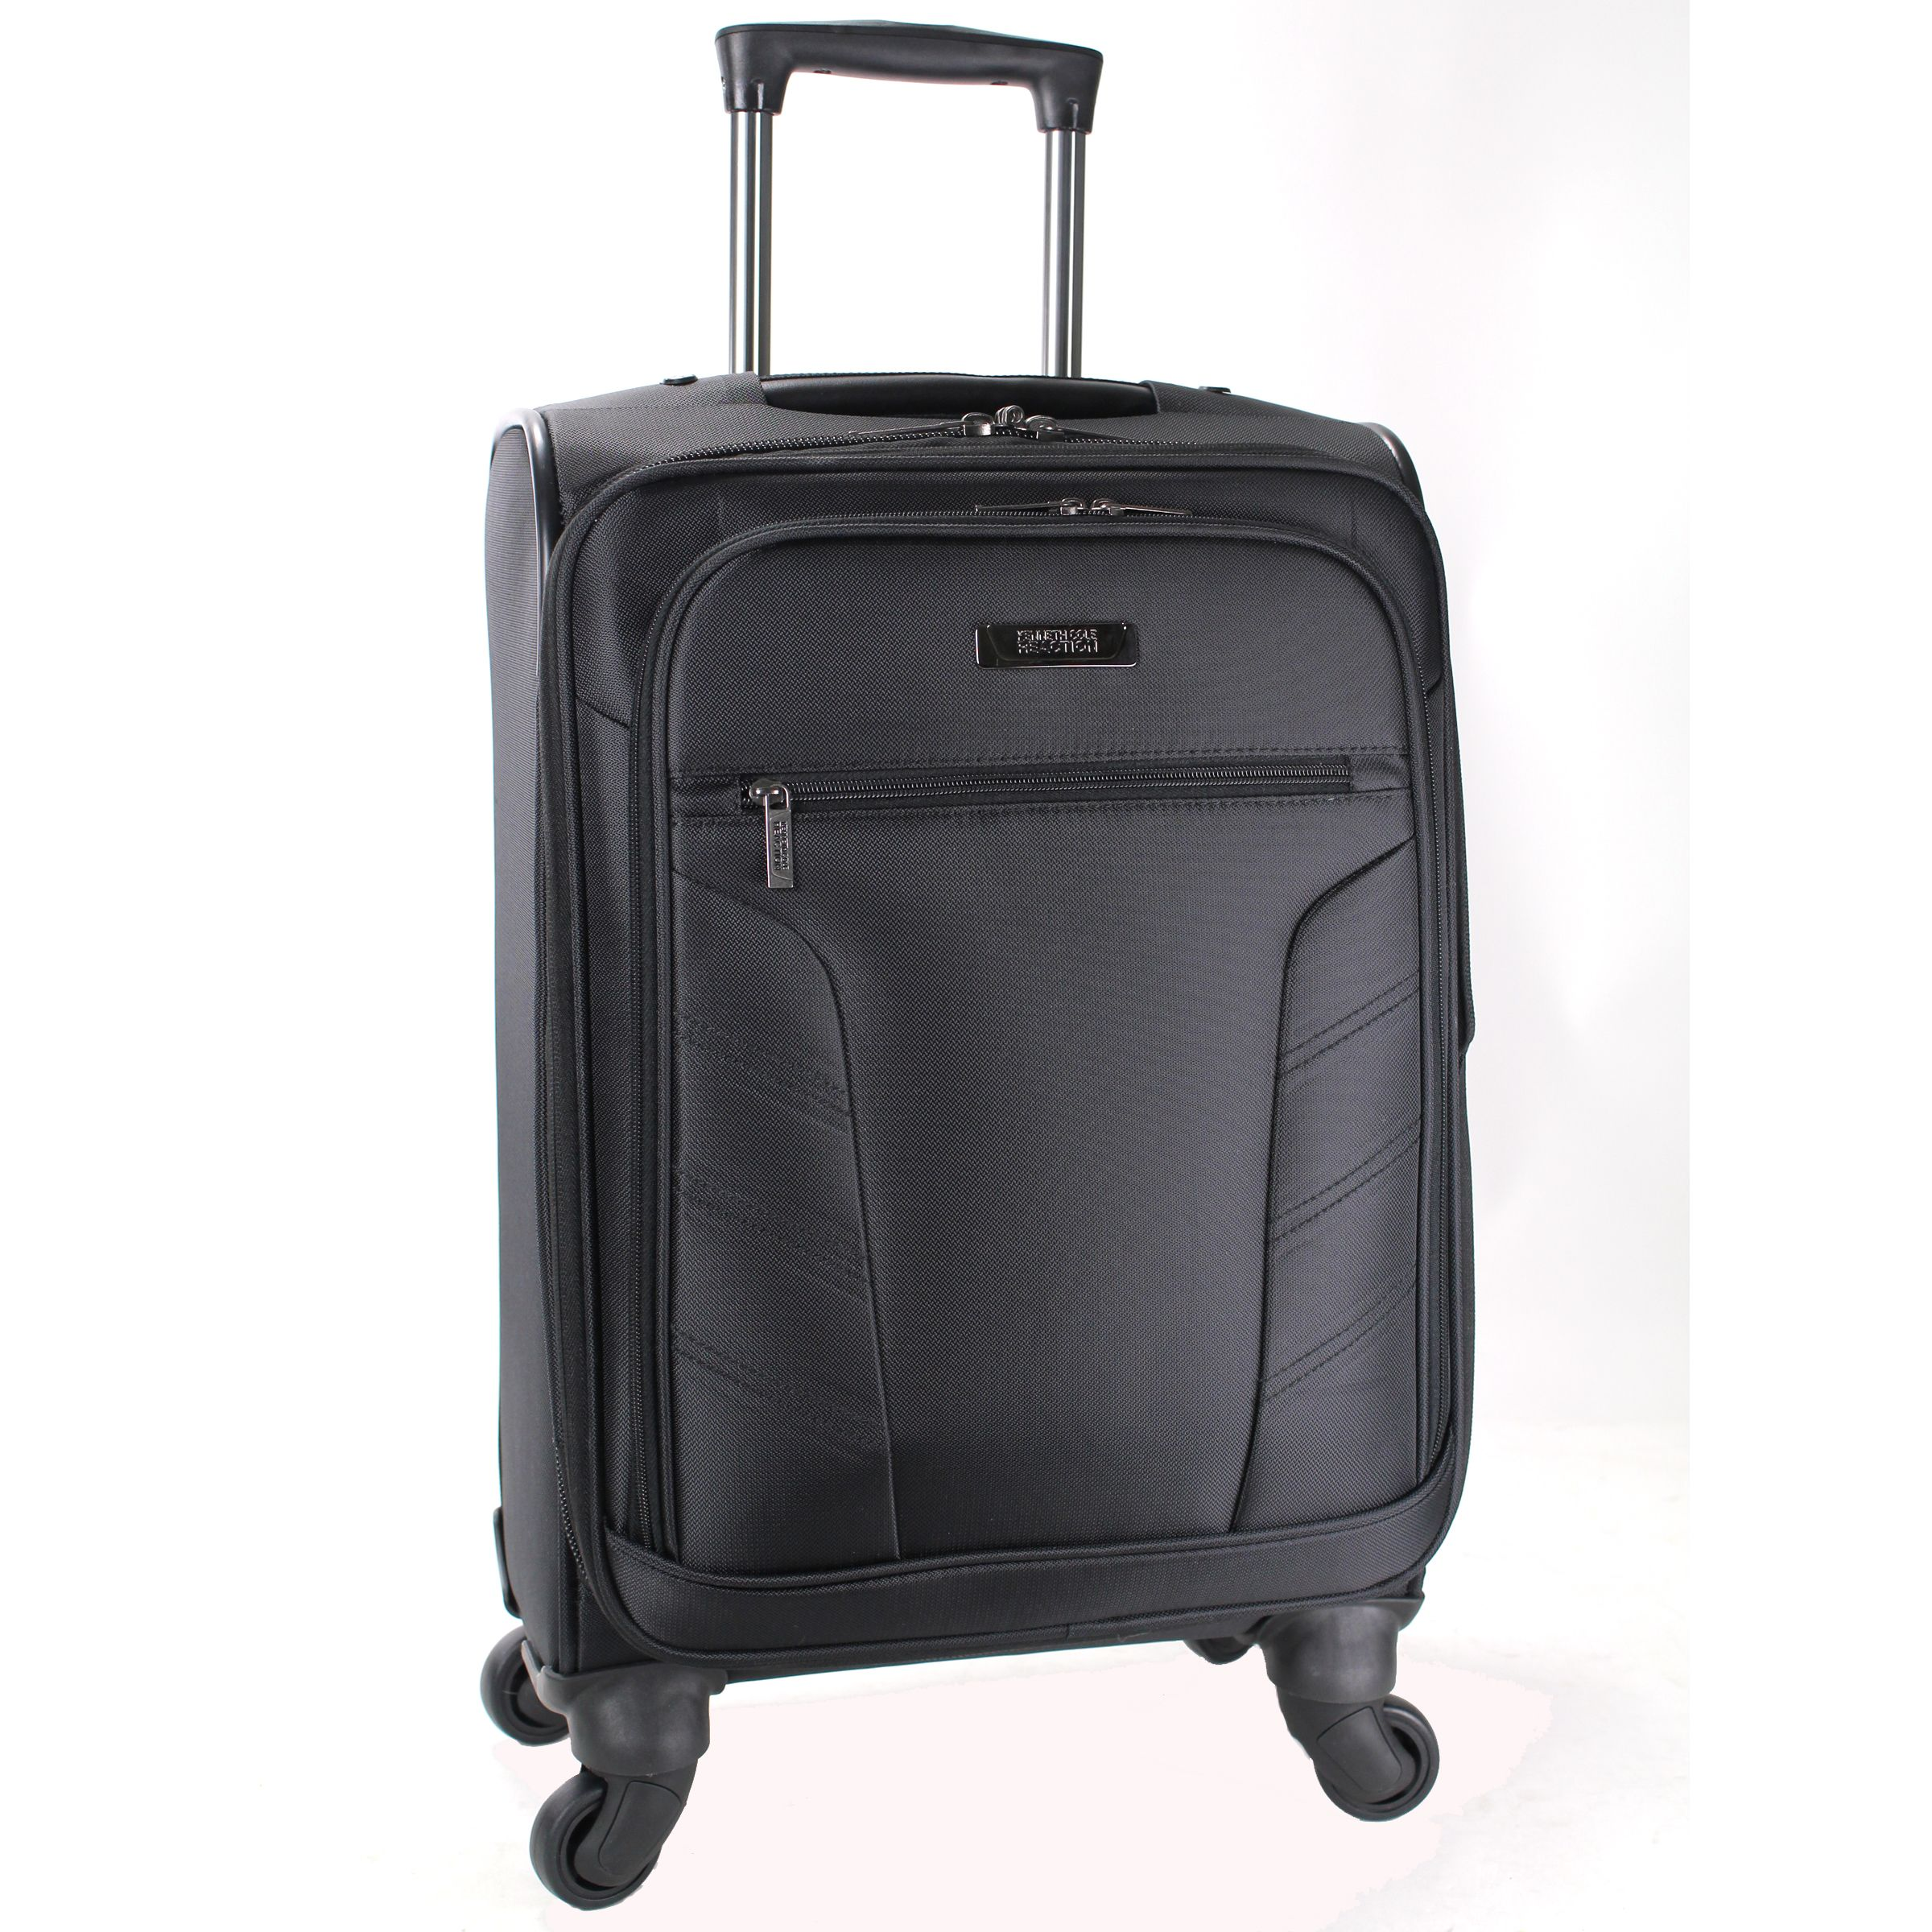 Flying high 2 wheel cabin suitcase